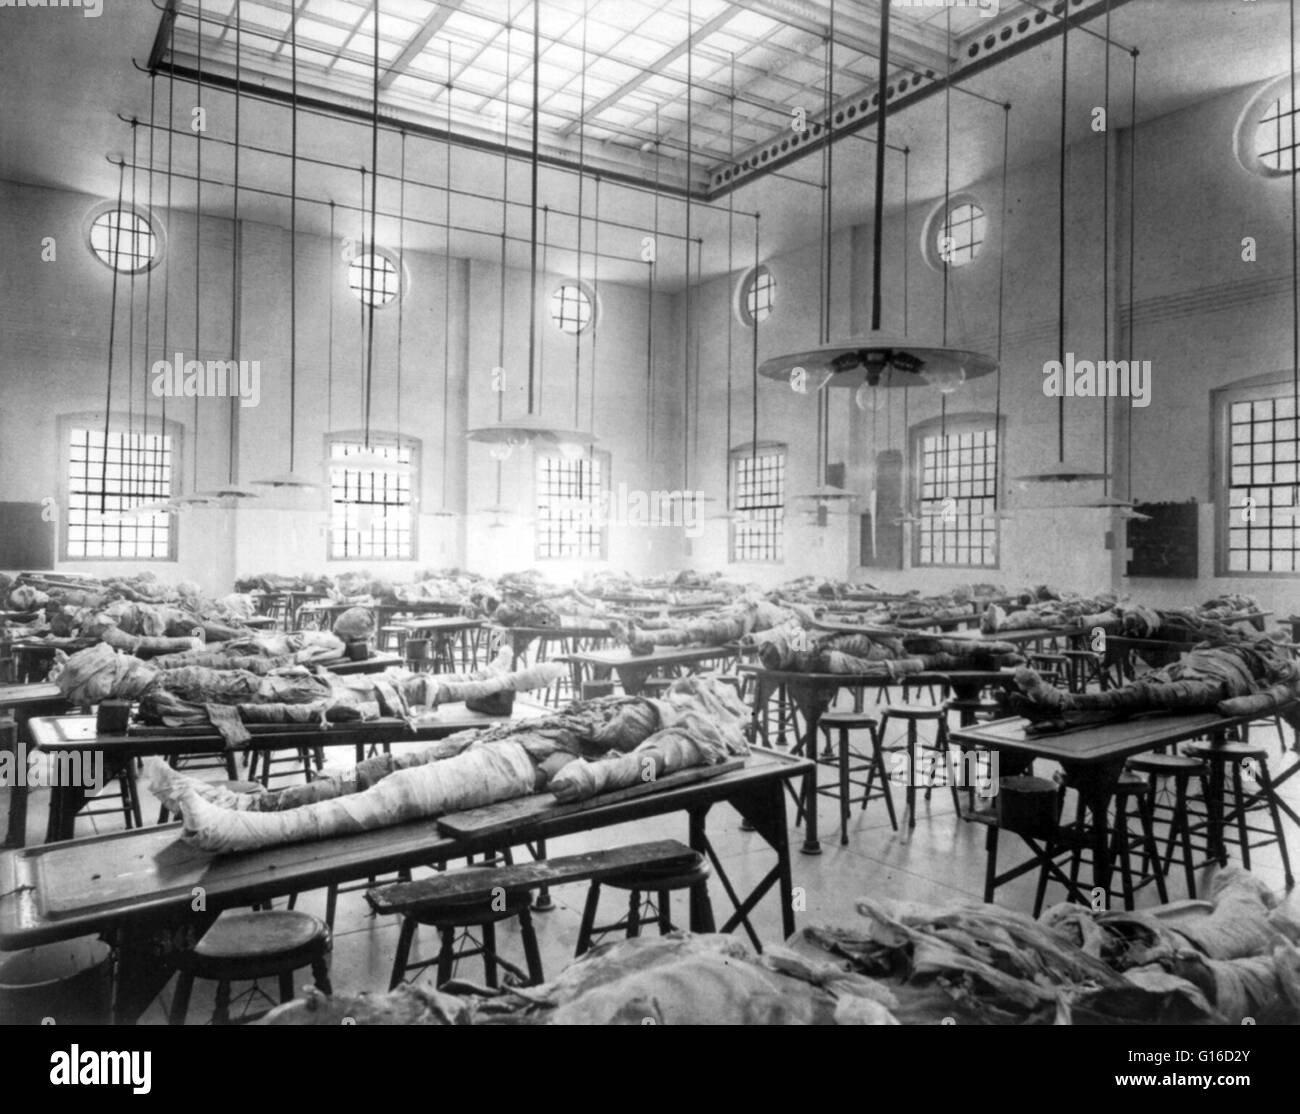 Dissecting Room Stock Photos Dissecting Room Stock Images Alamy -> Sala De Tv Jefferson